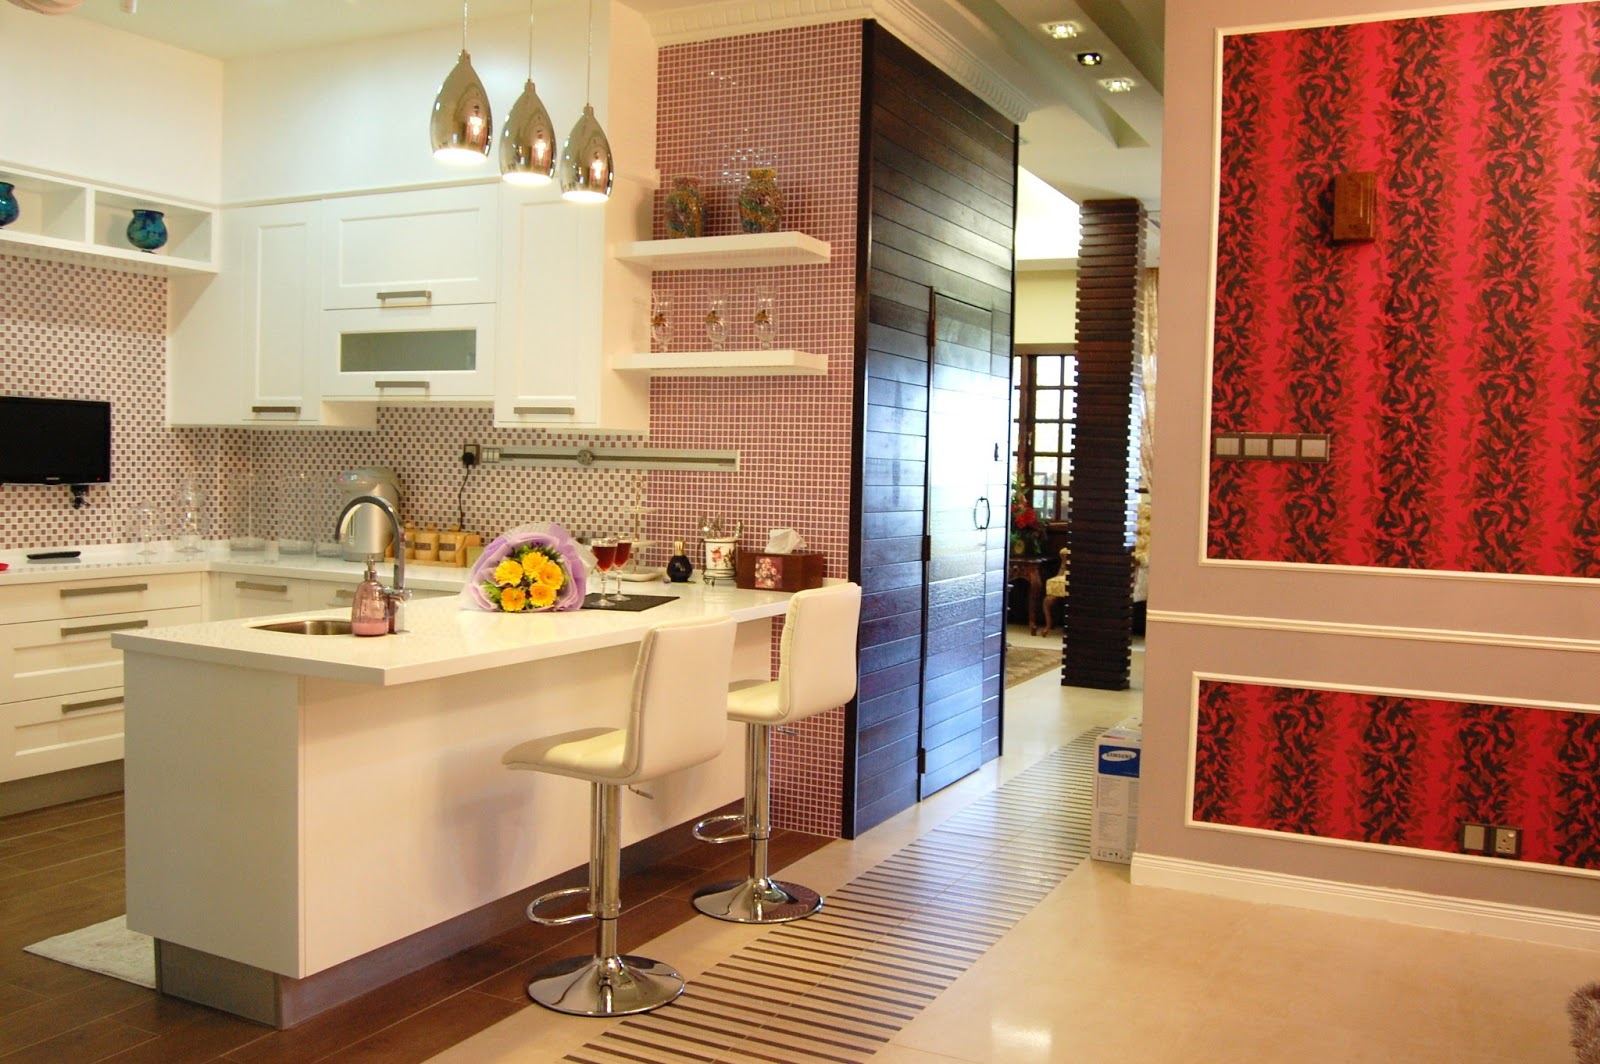 Meridian Design Kitchen Cabinet And Interior Design Blog Malaysia Design For Denai Alam